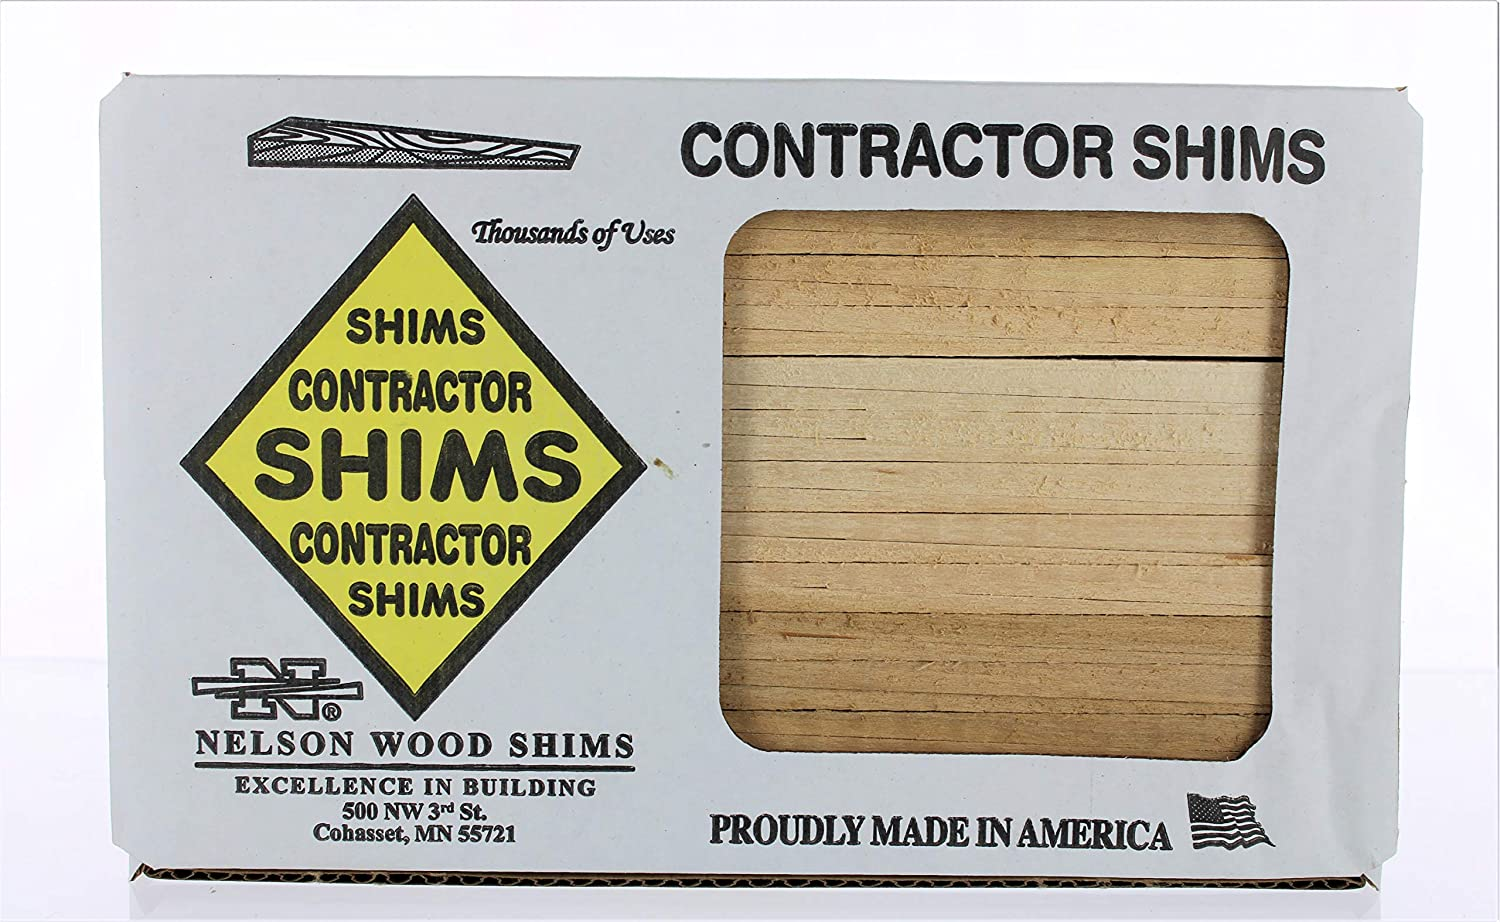 Nelson Wood Shims CSBP56 Csh8/56/120/Mgd 8'' Bulk Contractor